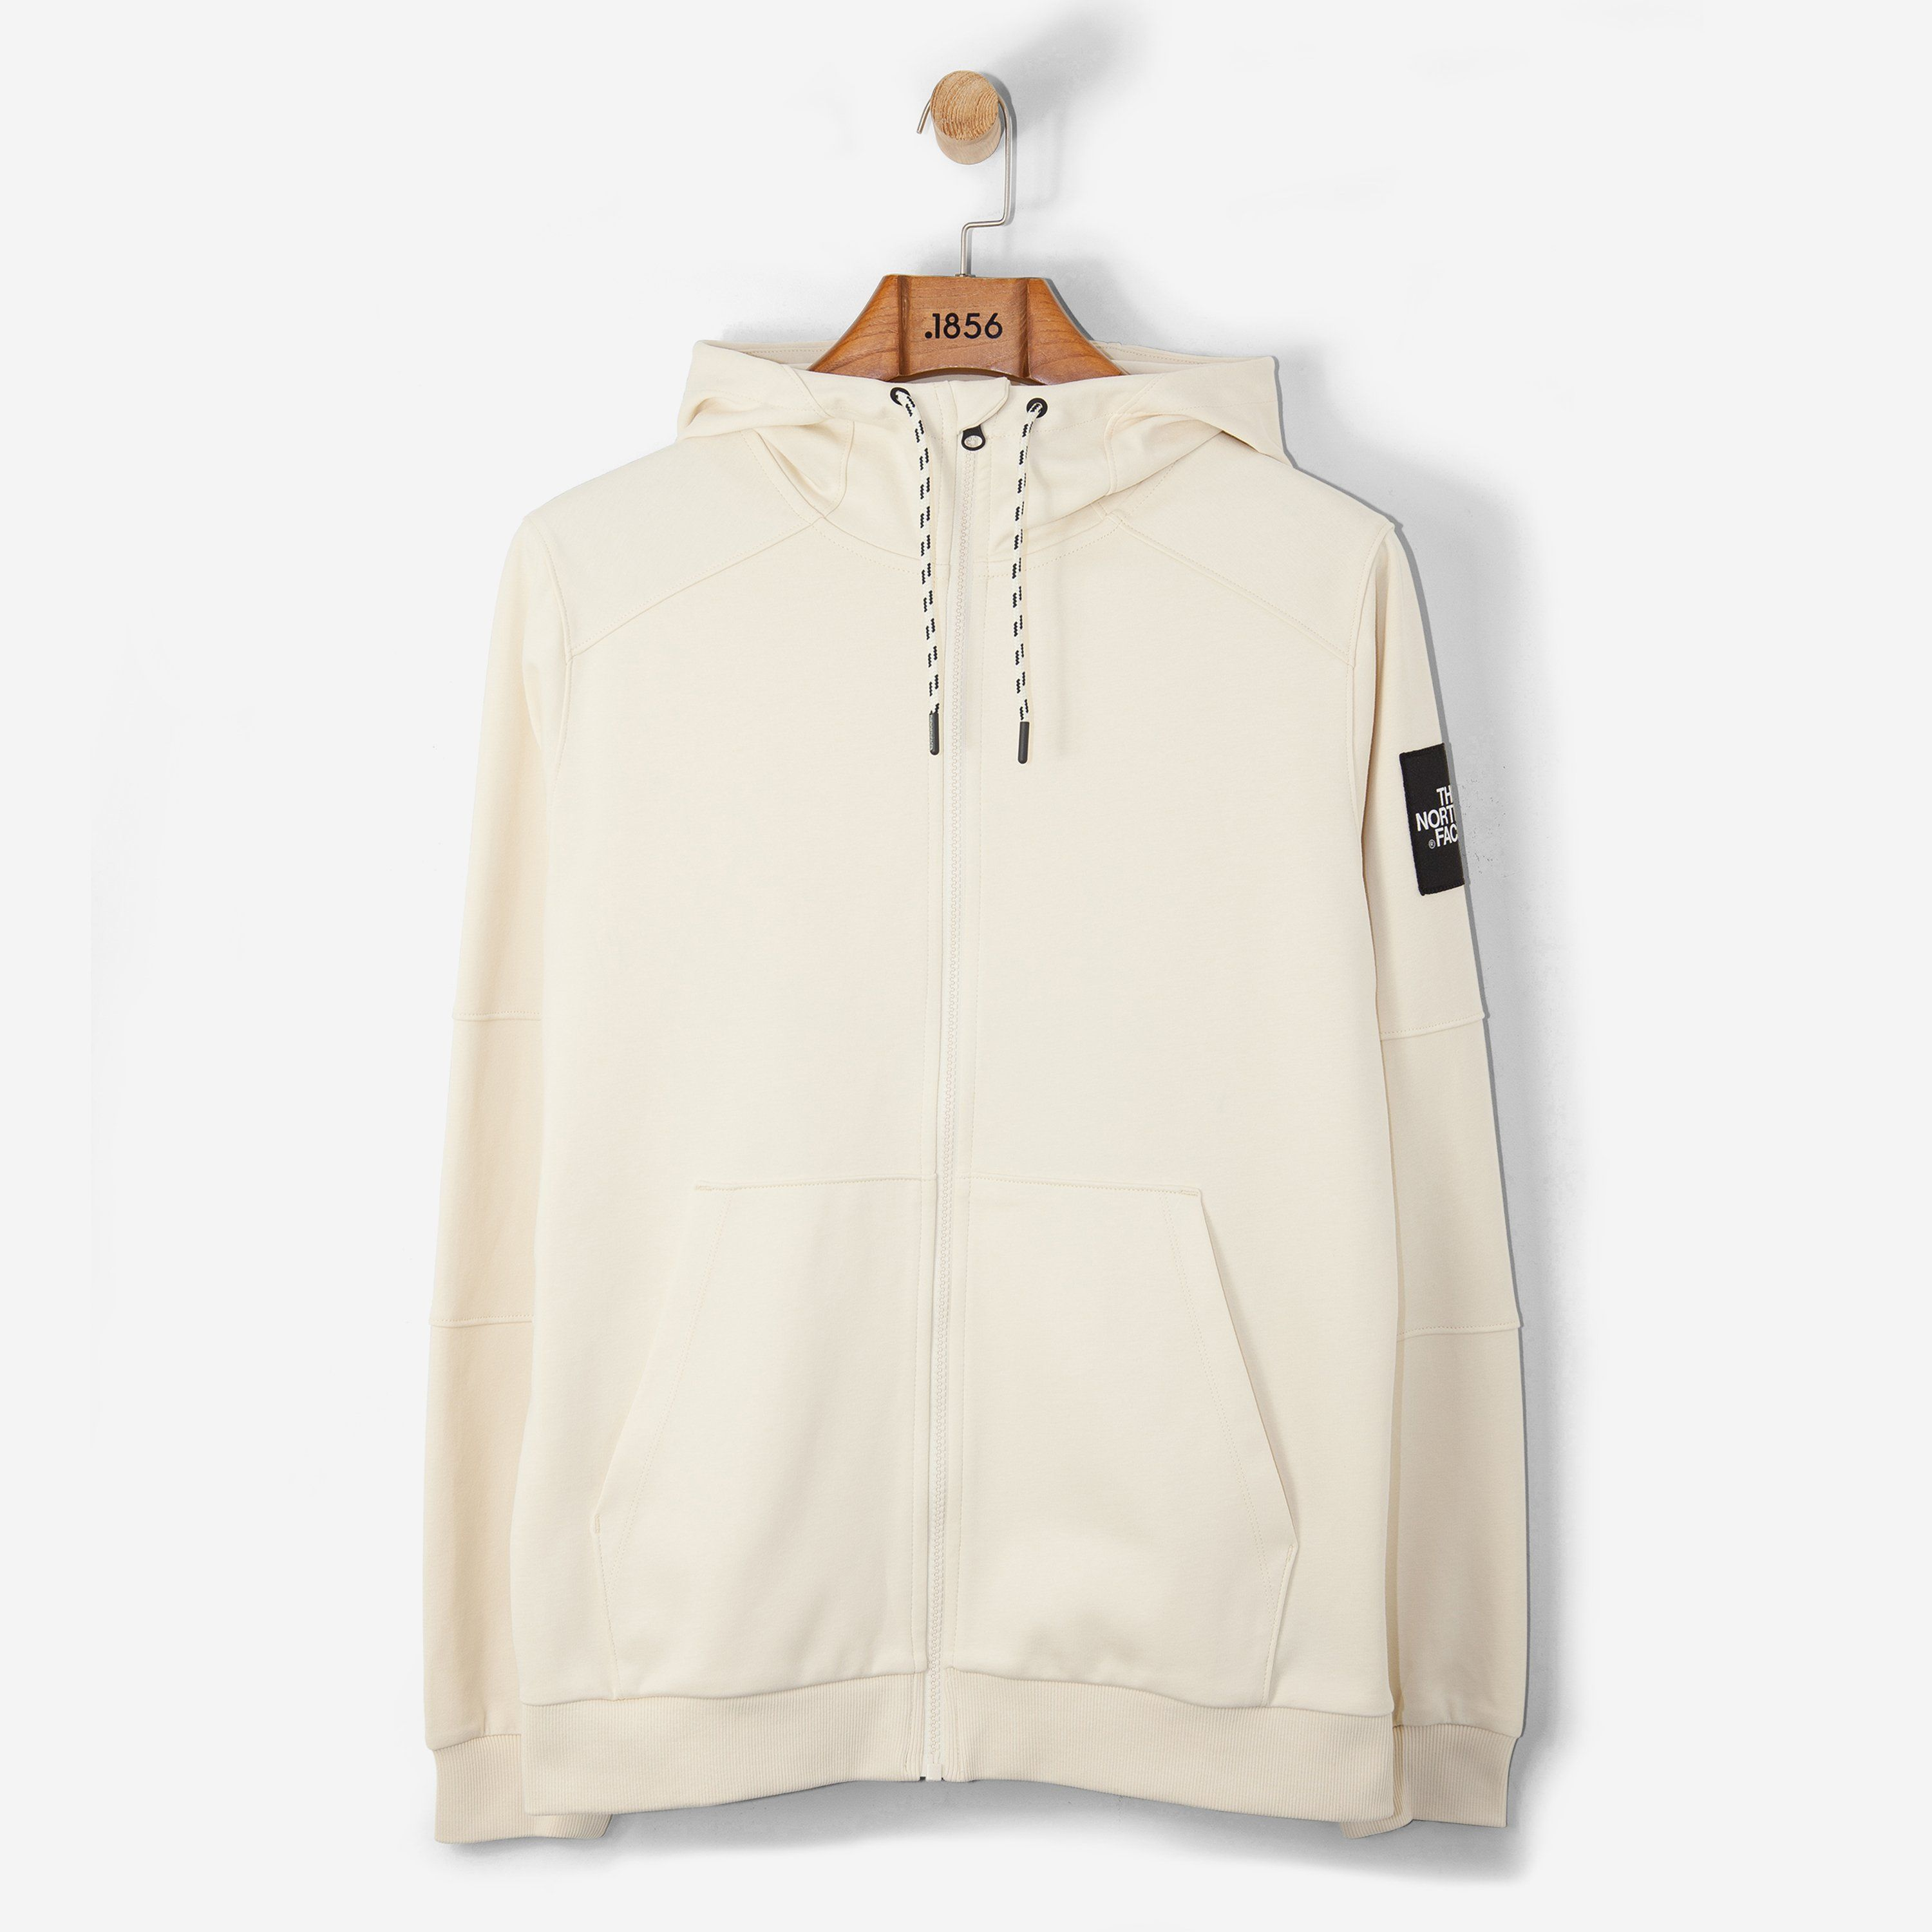 c0d16fadc The North Face Black Label Full Zip Fine Hood Vintage White Free SHIPPING  OVER £50.00